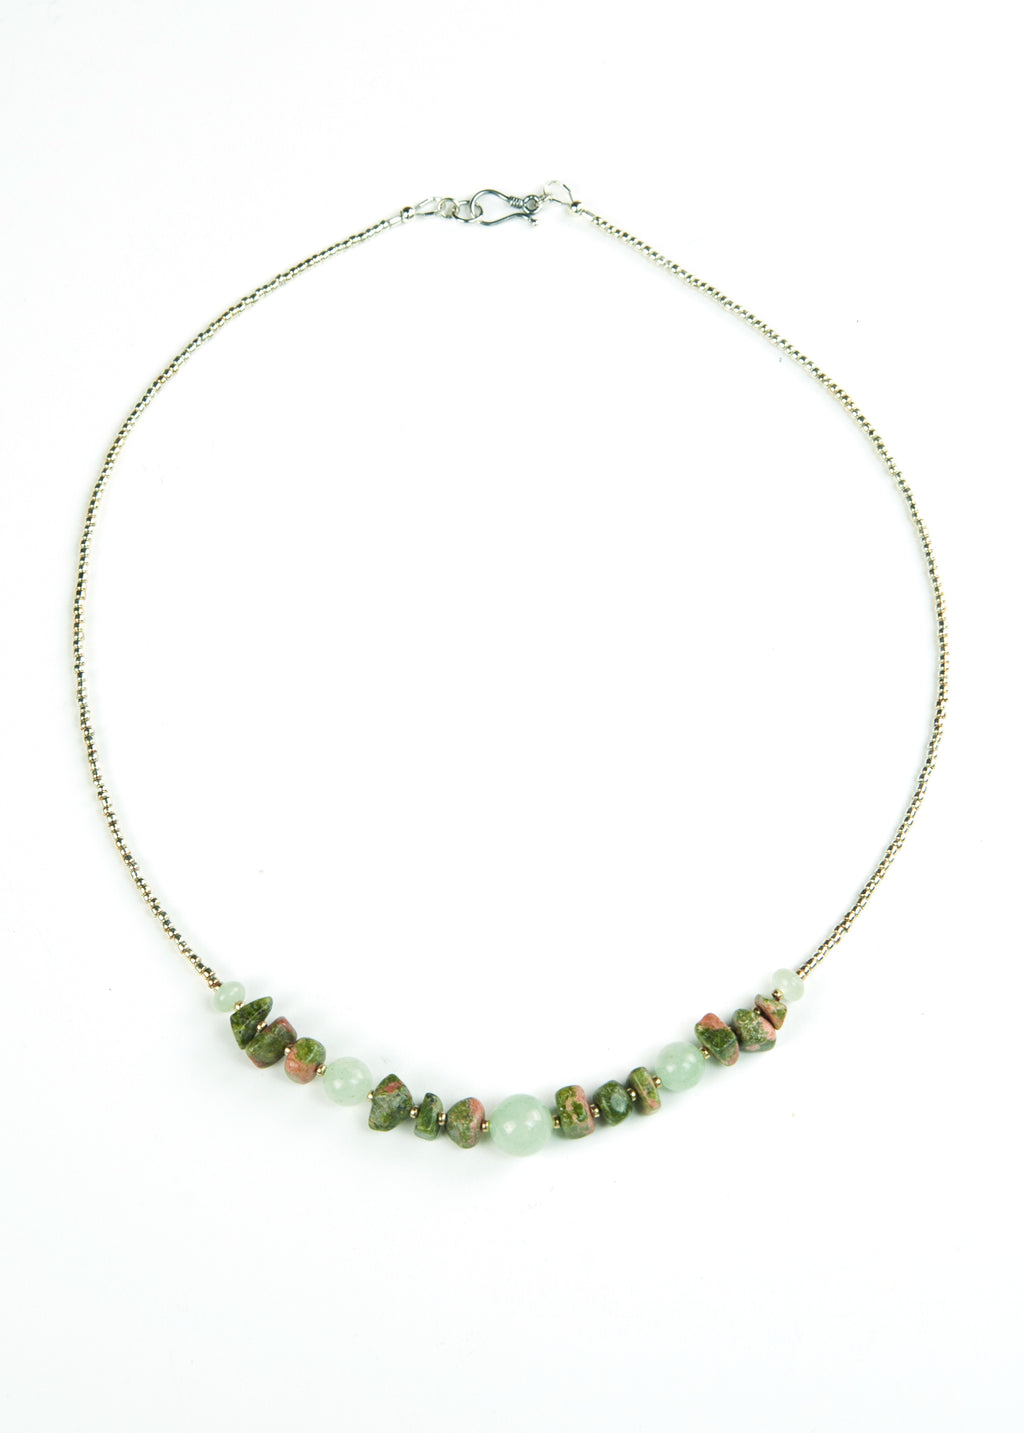 Green Glass and Stone Chip Envy Necklace